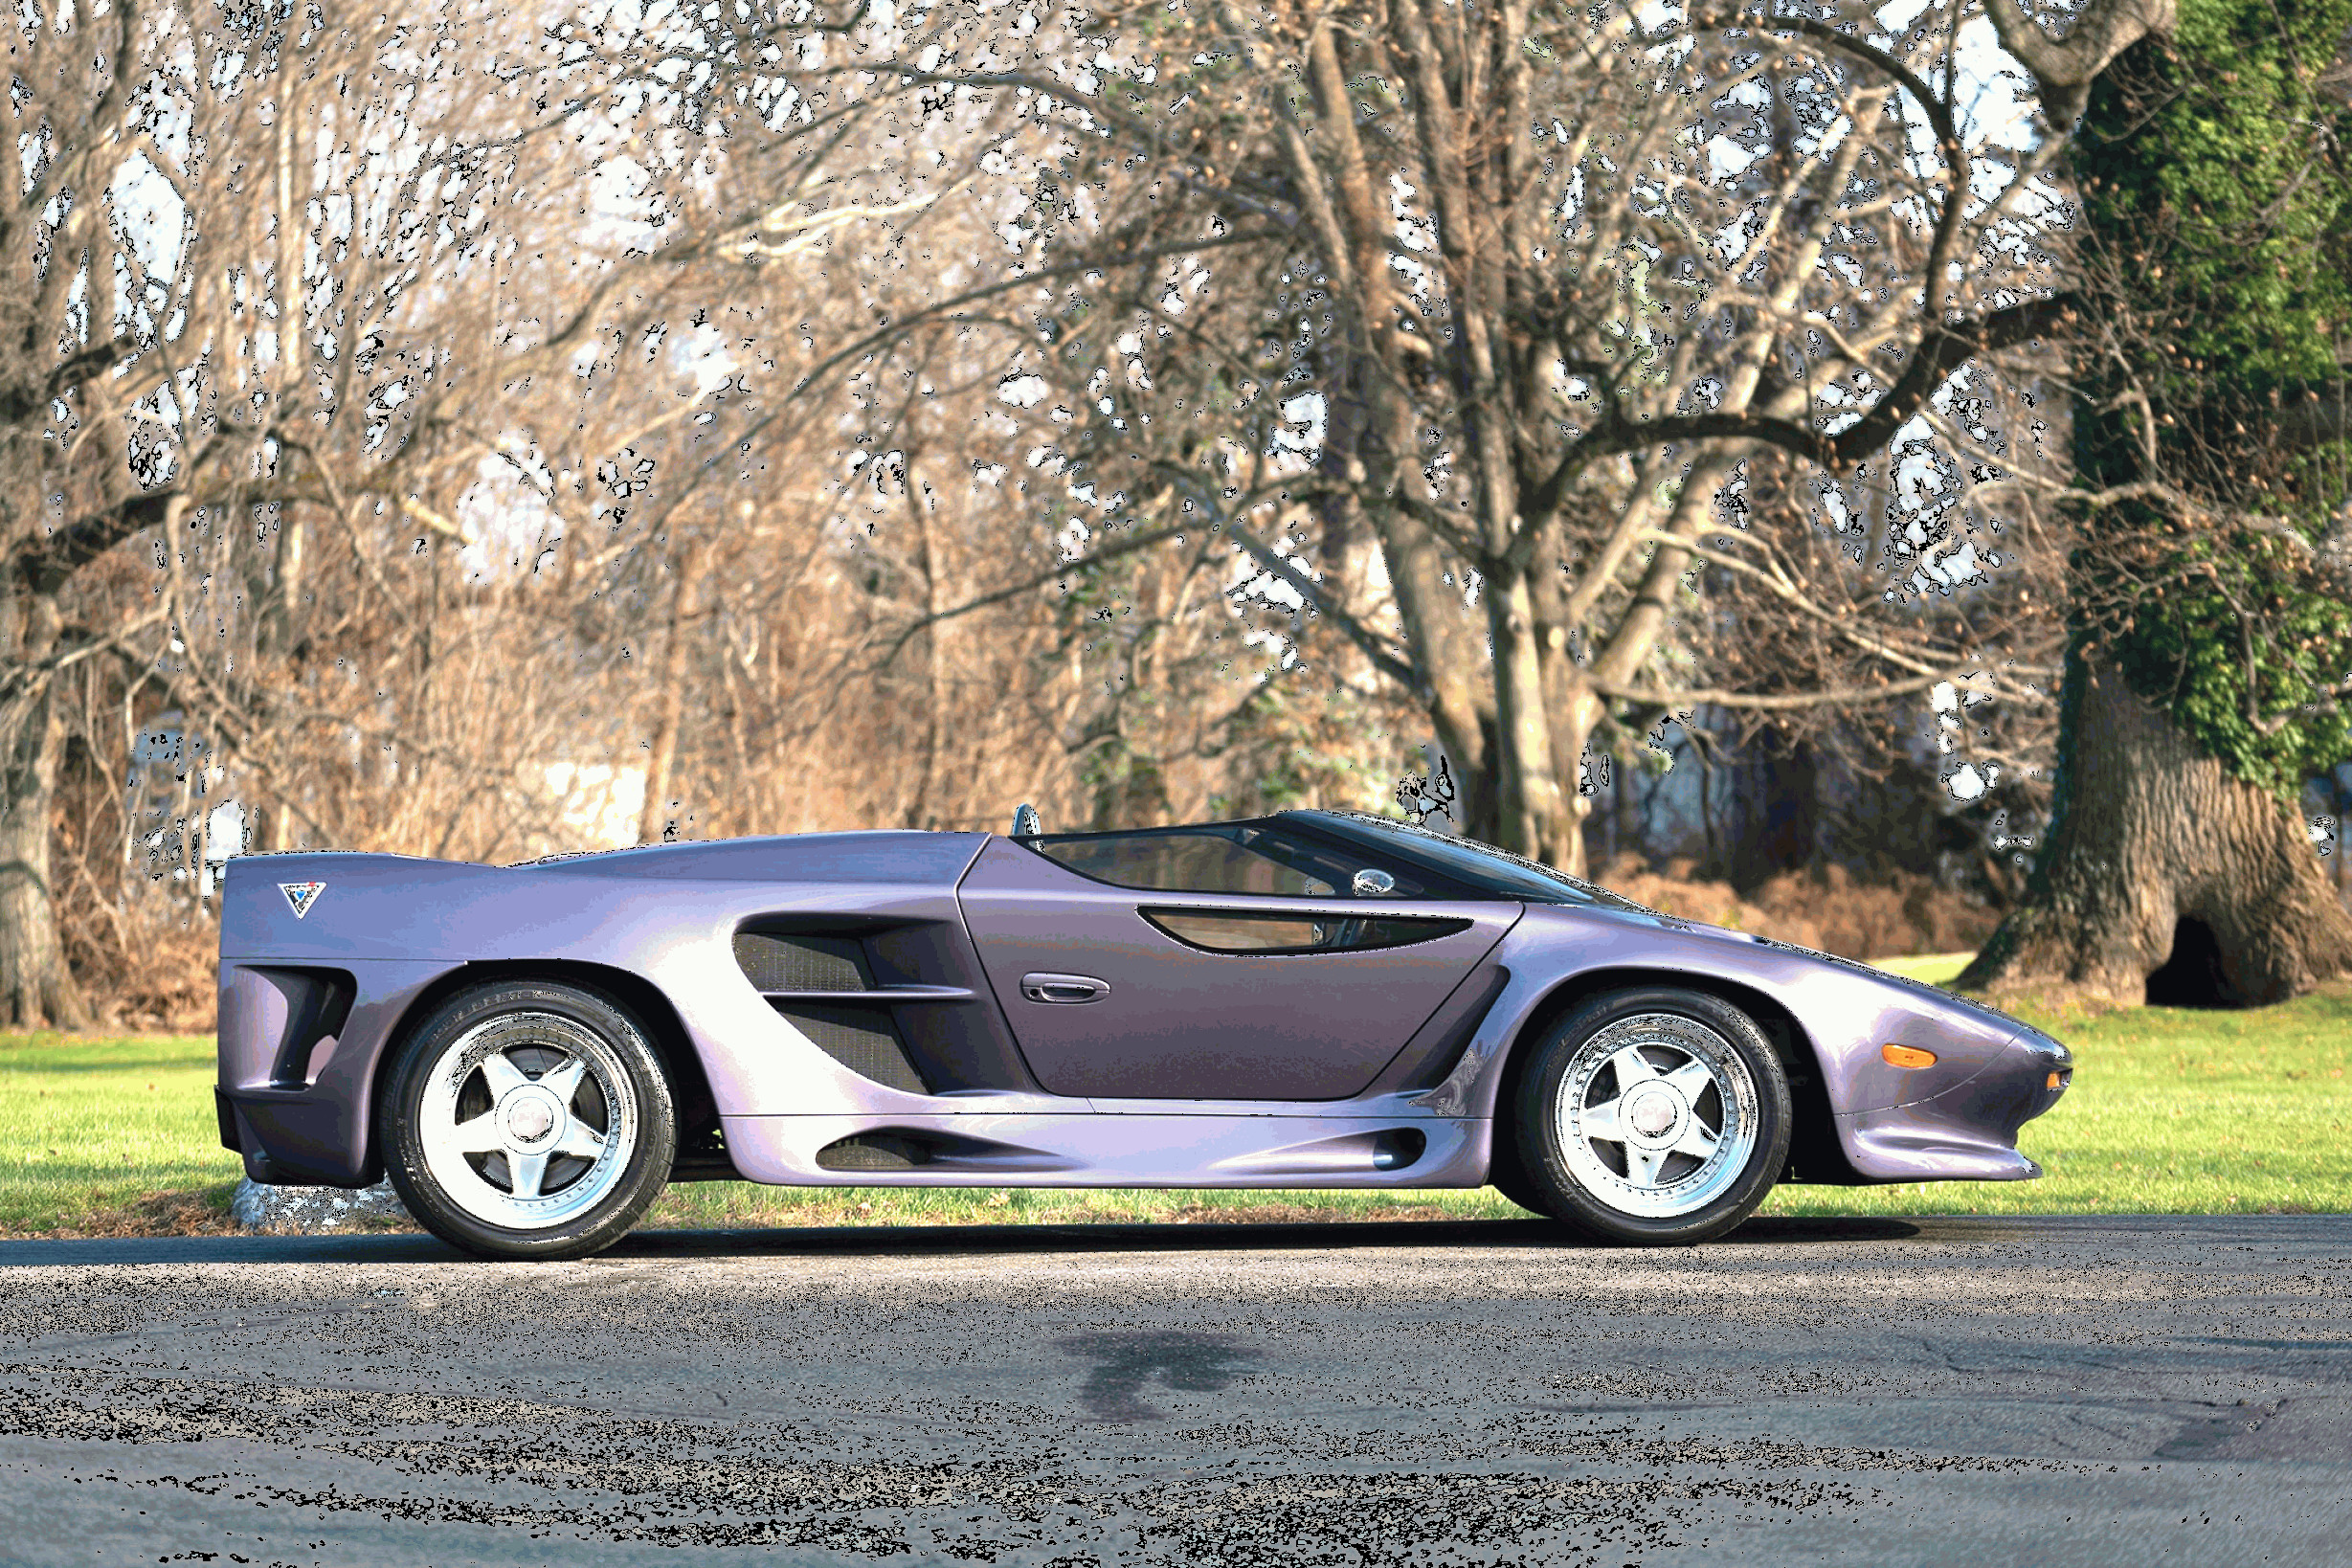 Vector Car: The Vector Wx Is The Only Car To Out Countach The Countach